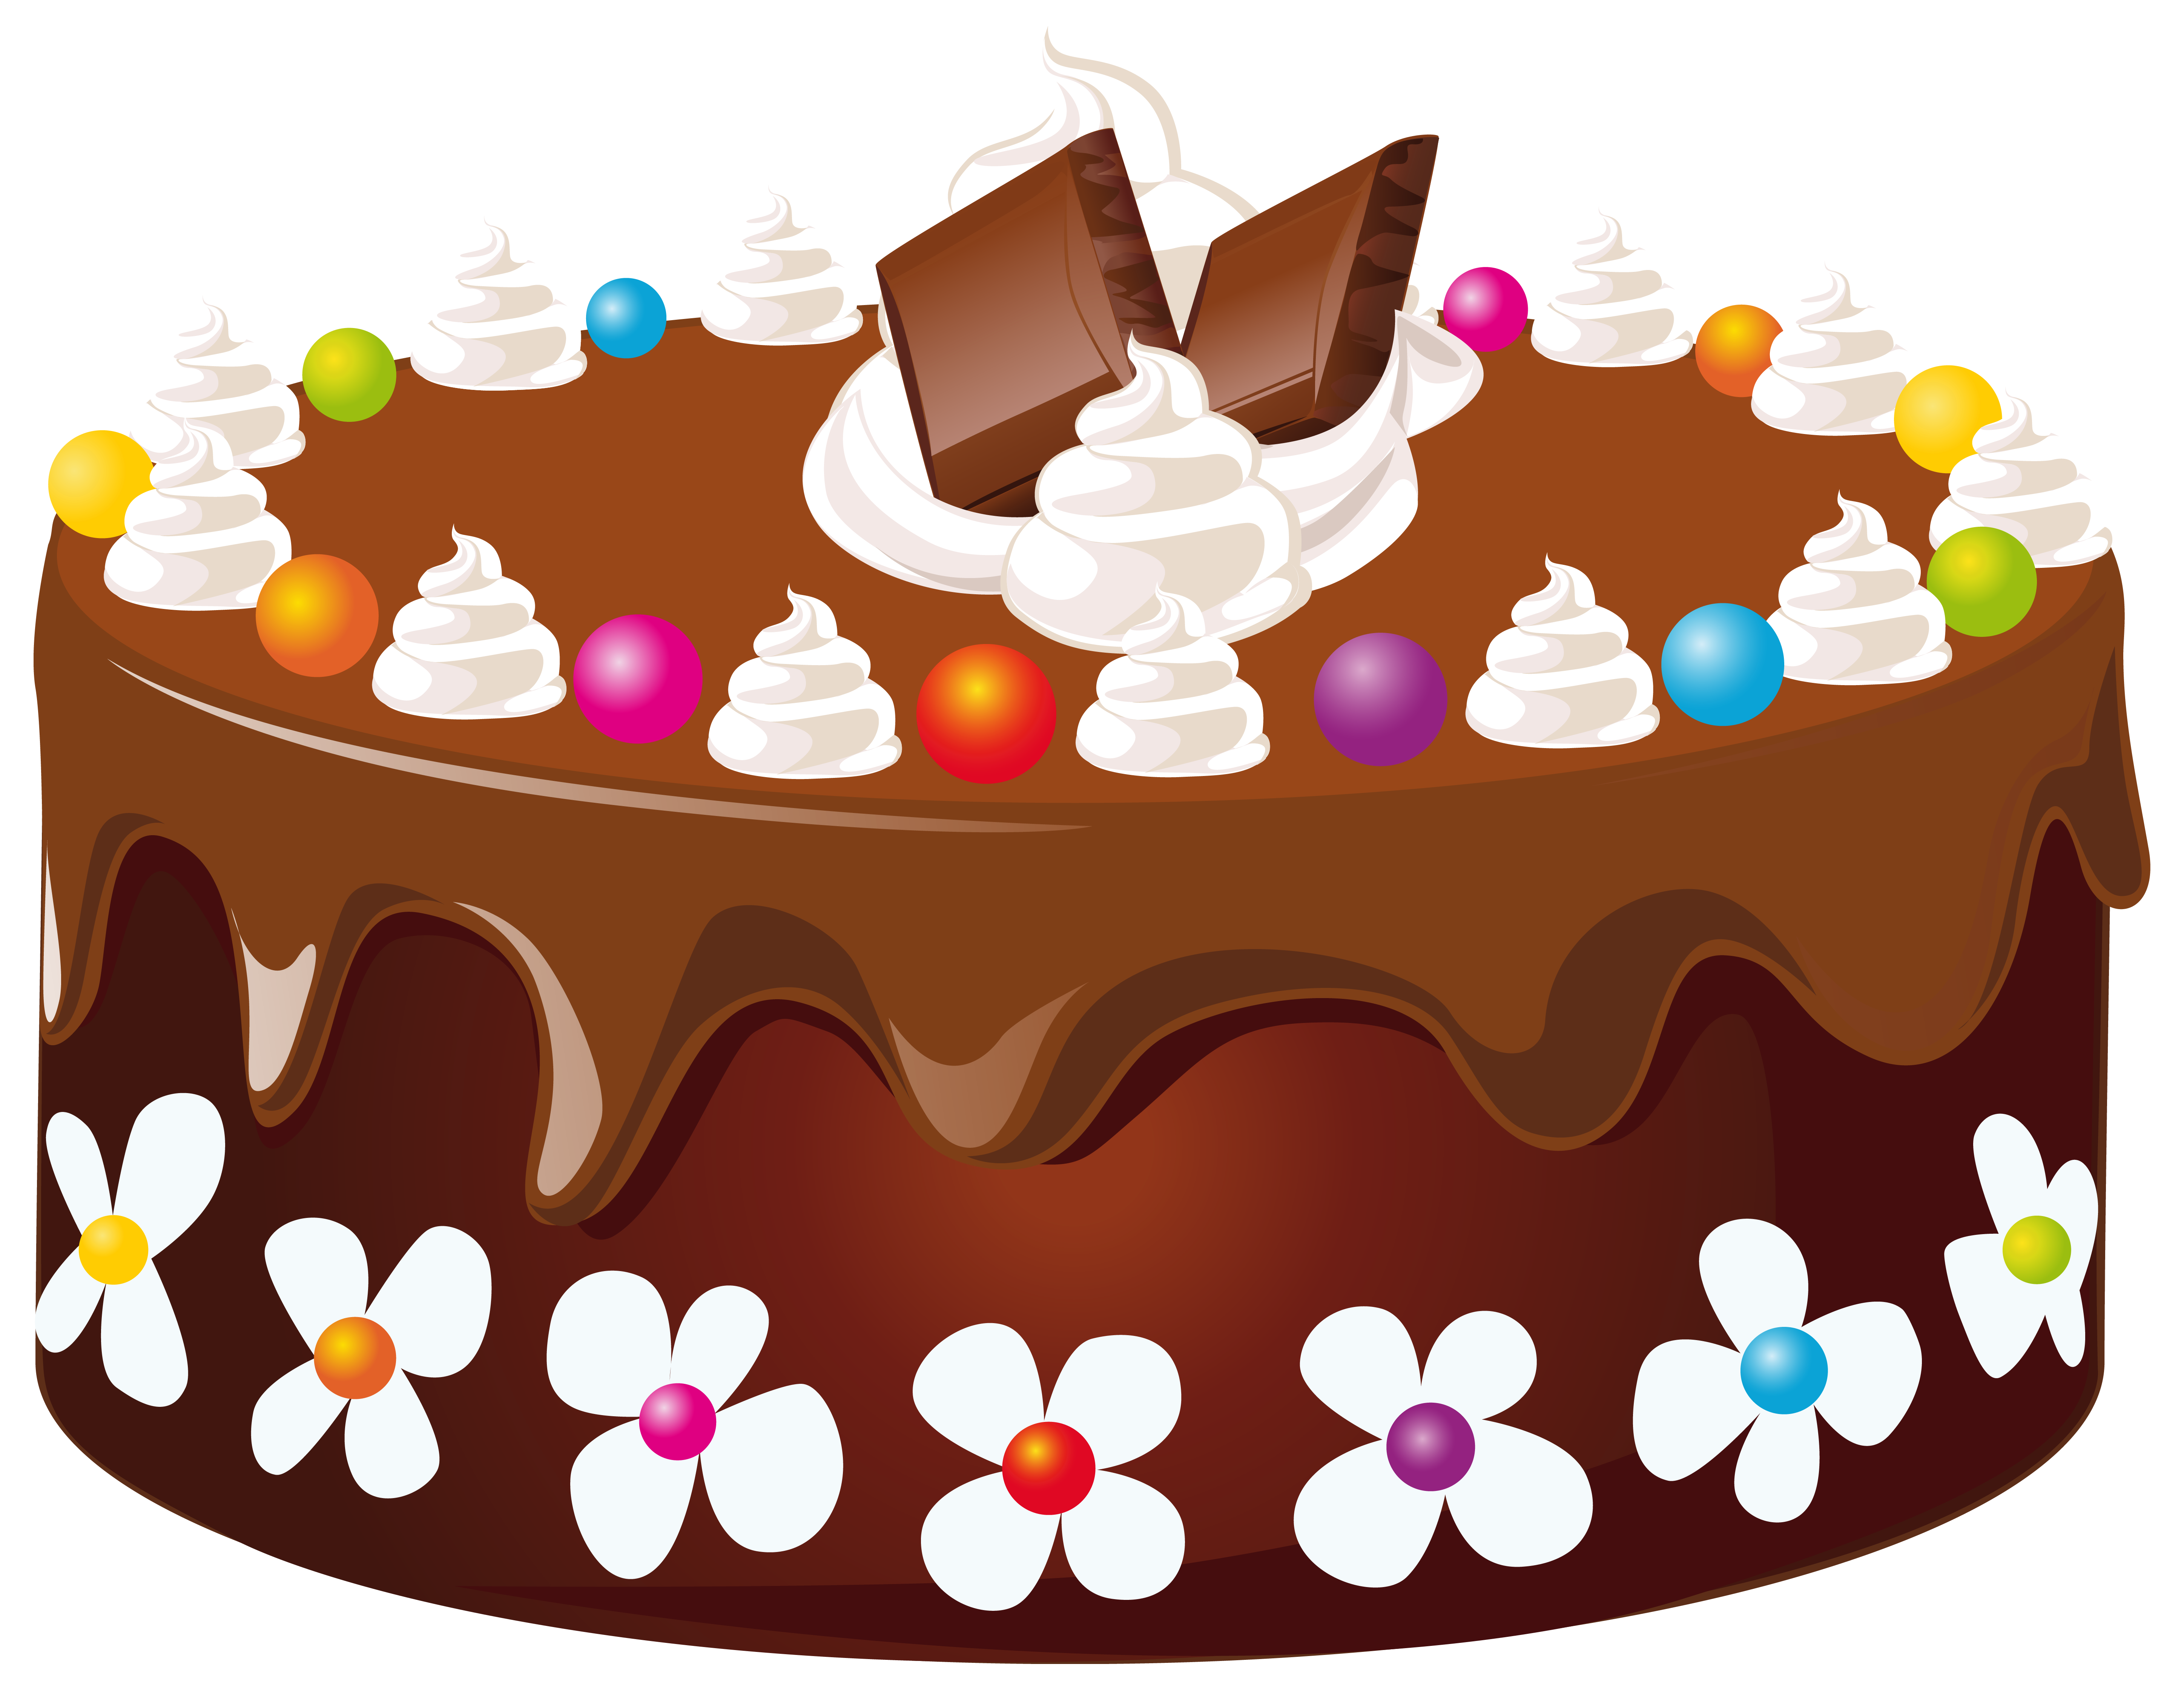 Chocolate cake clipart - .